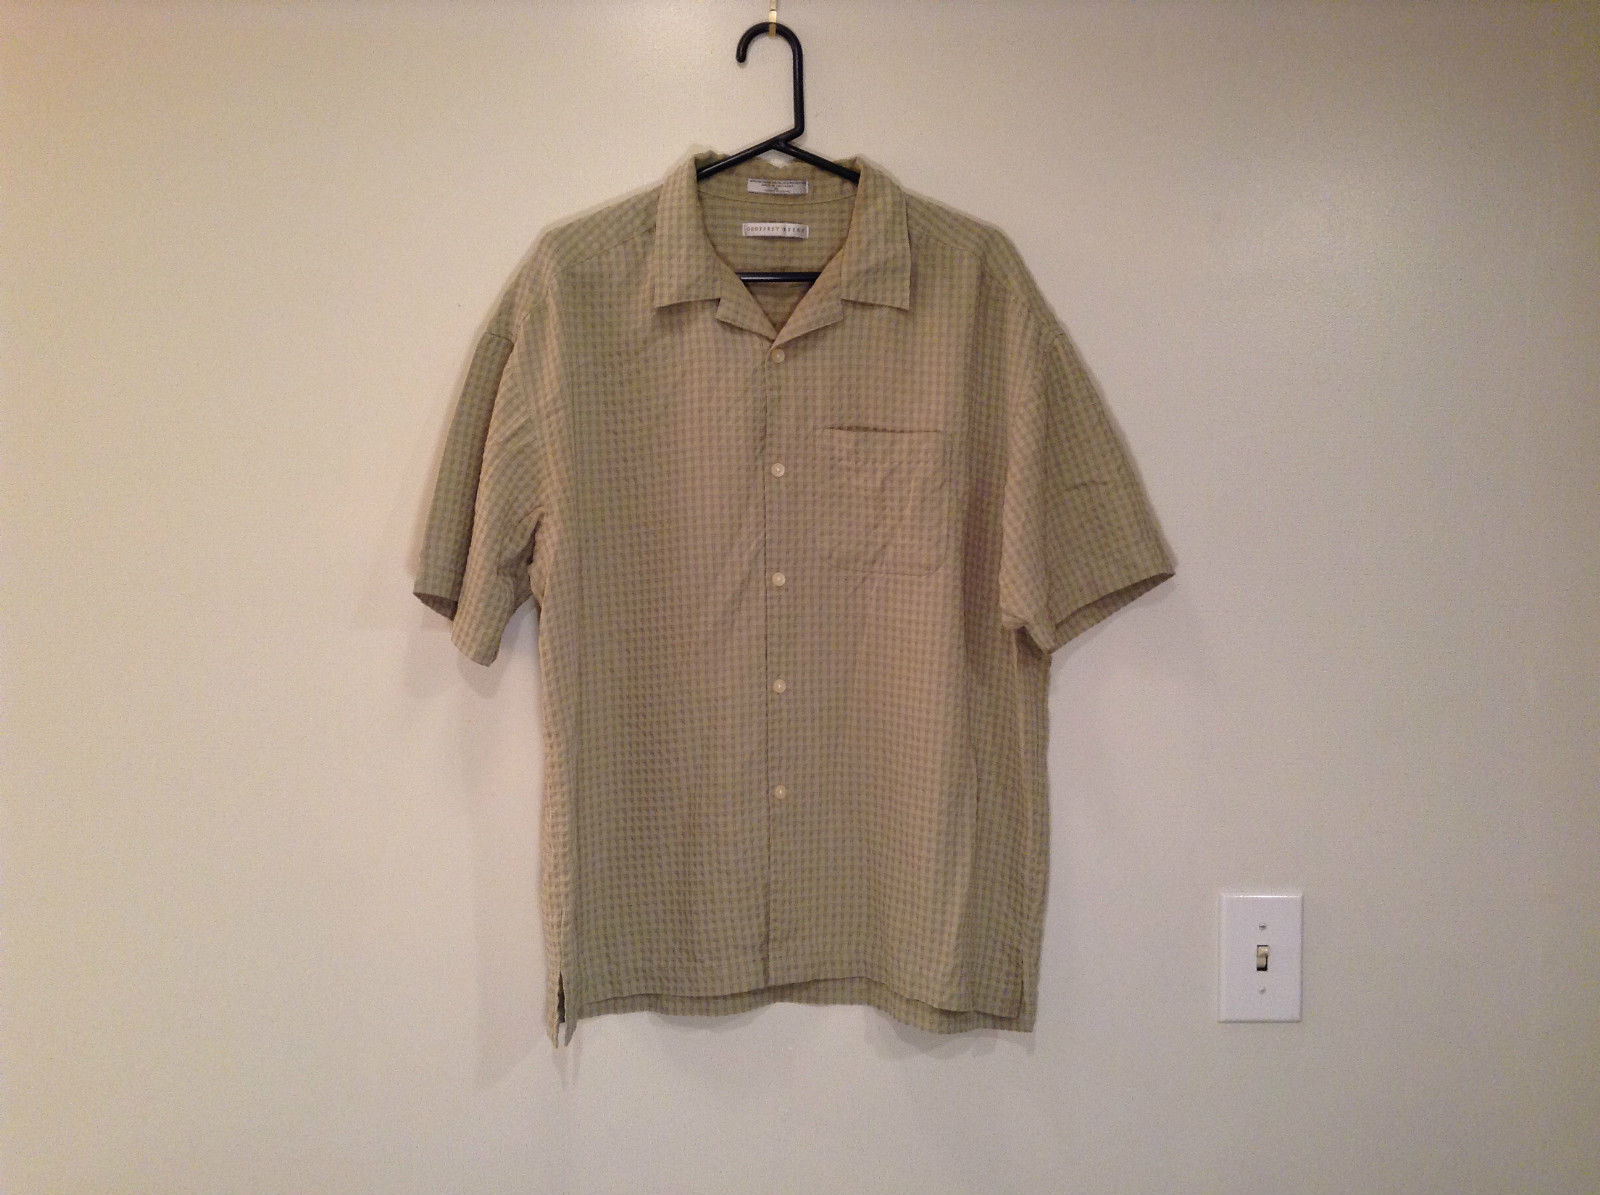 Light Olive Green Plaid Short Sleeve Button Up Shirt Geoffrey Beene Size XL